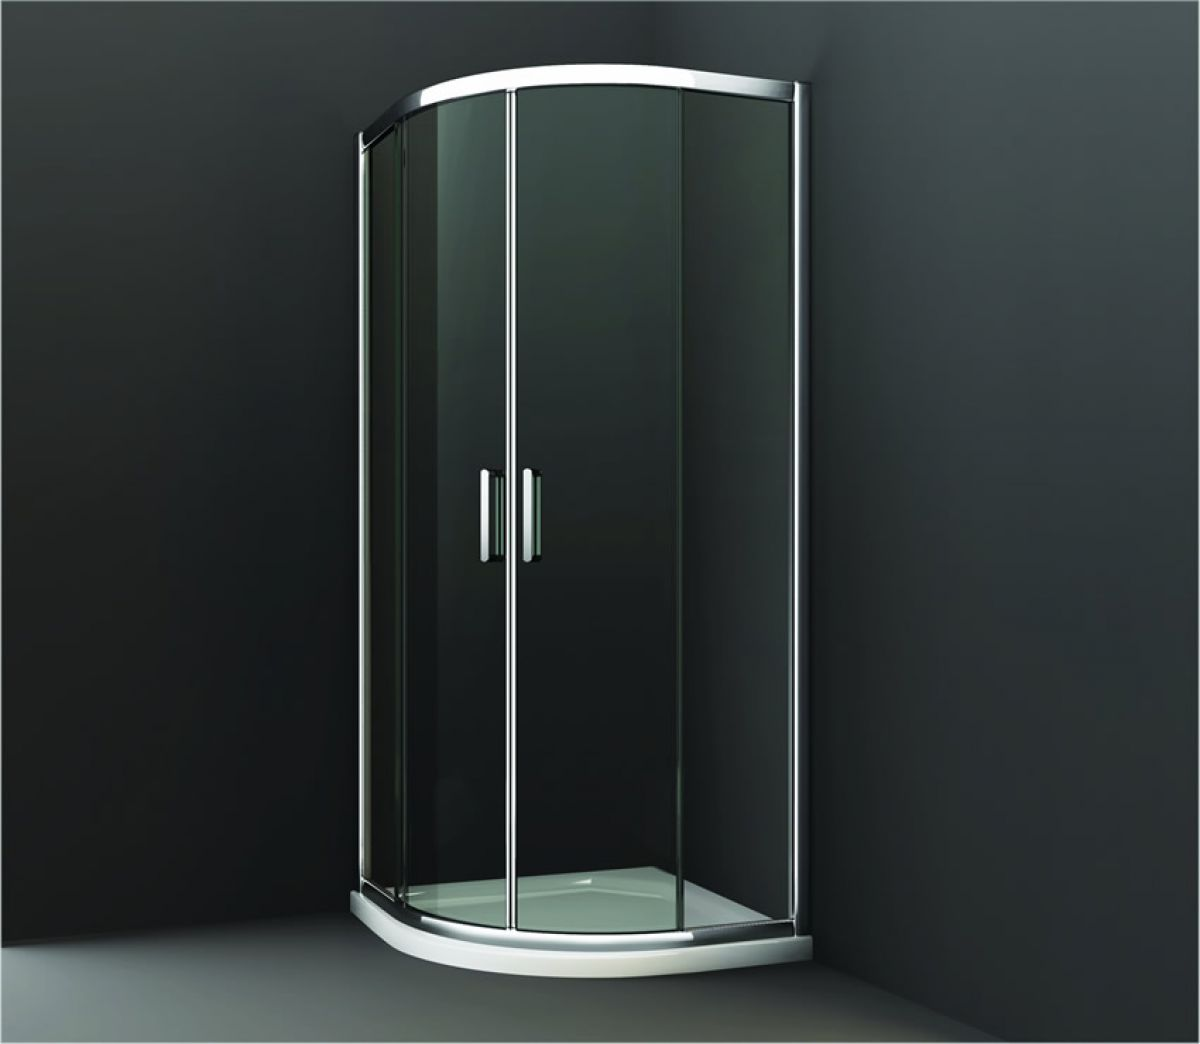 Merlyn series 8 twin door quadrant shower package uk for Door quadrant